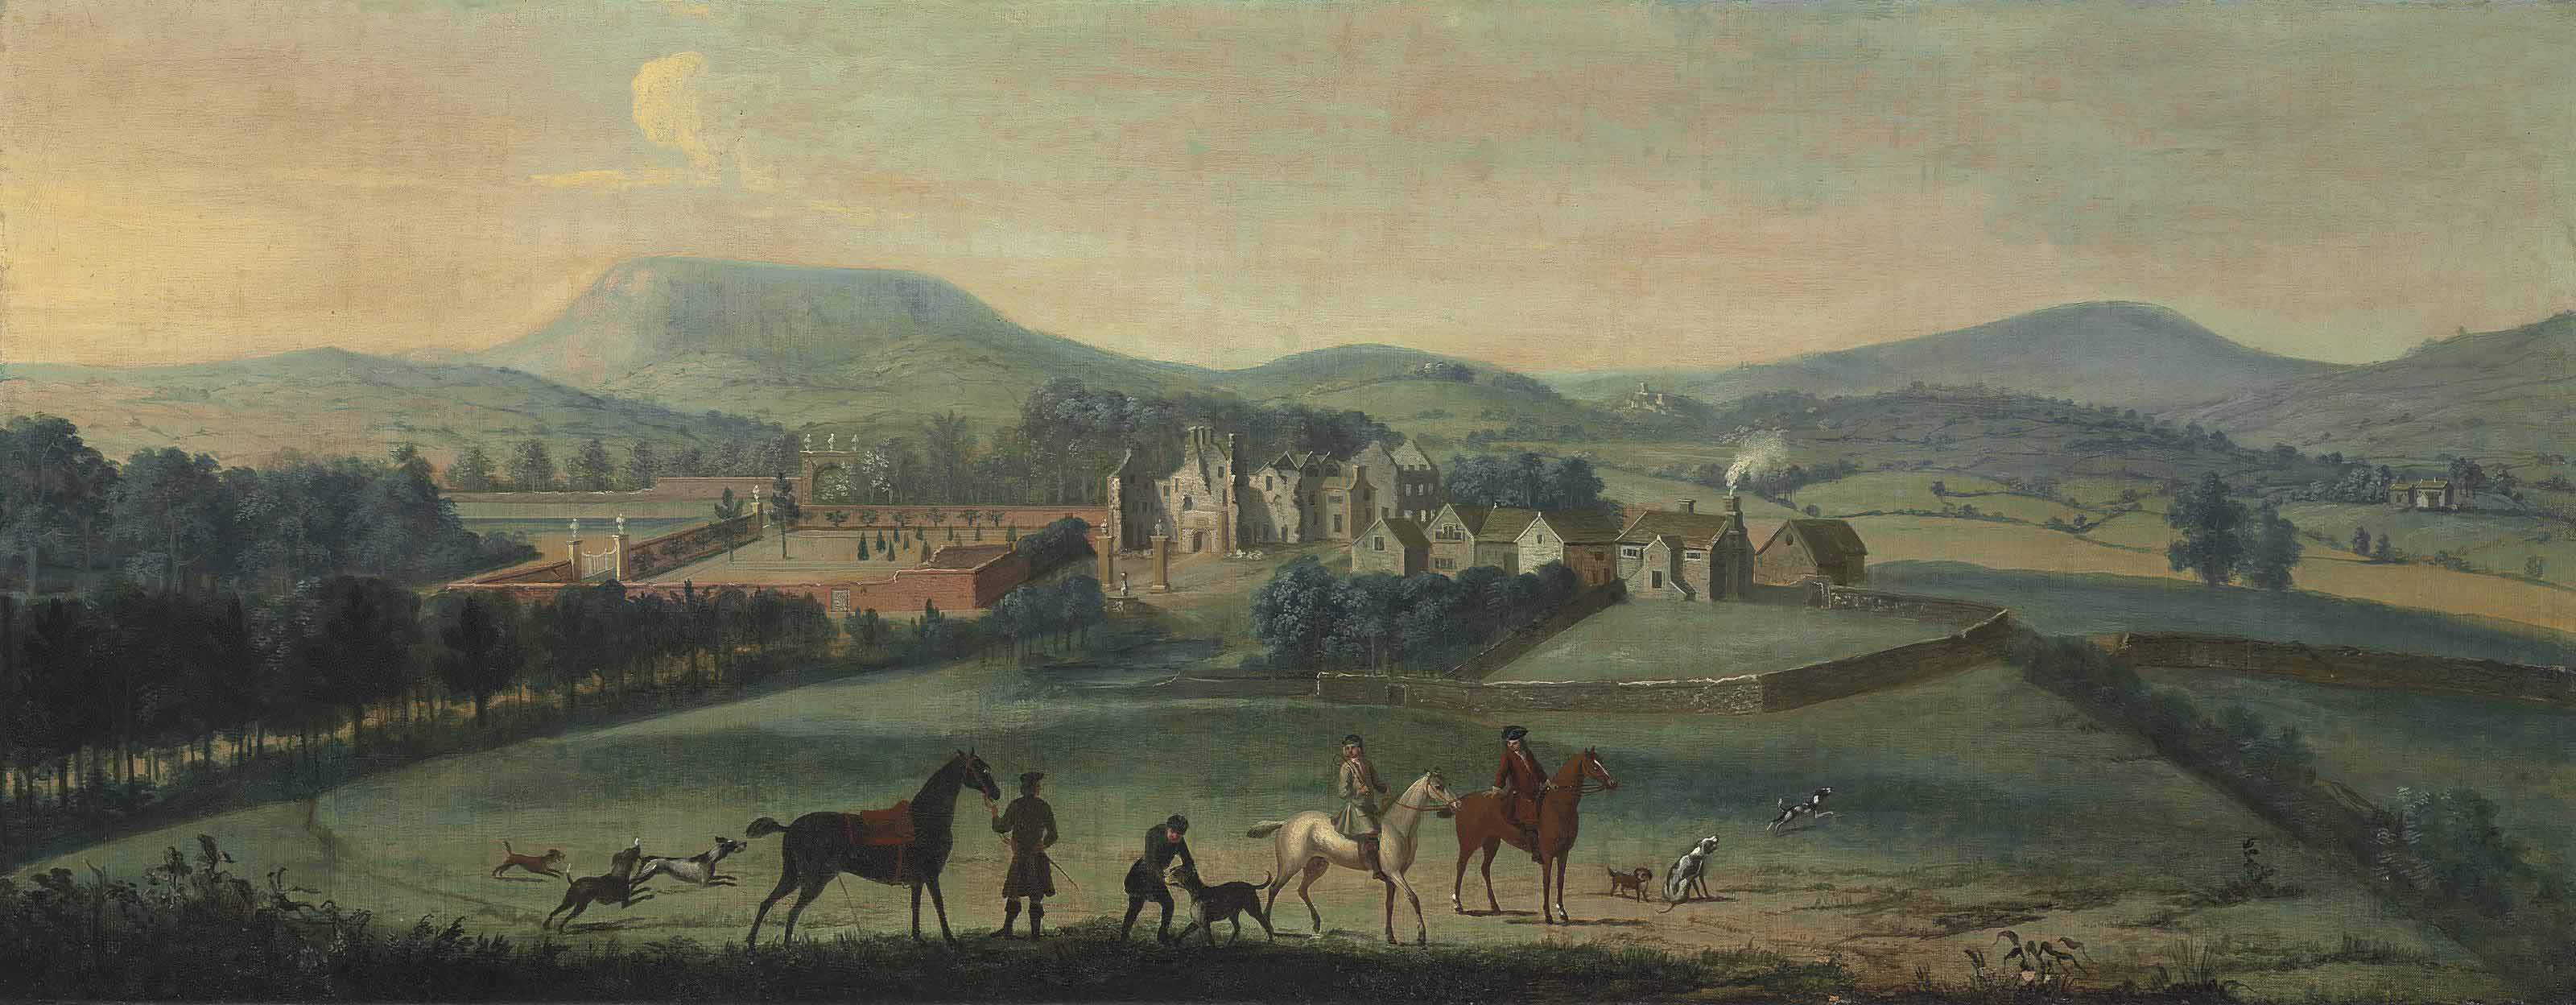 A view of the ruined Westby Hall, Yorkshire, with a hunting party in the foreground